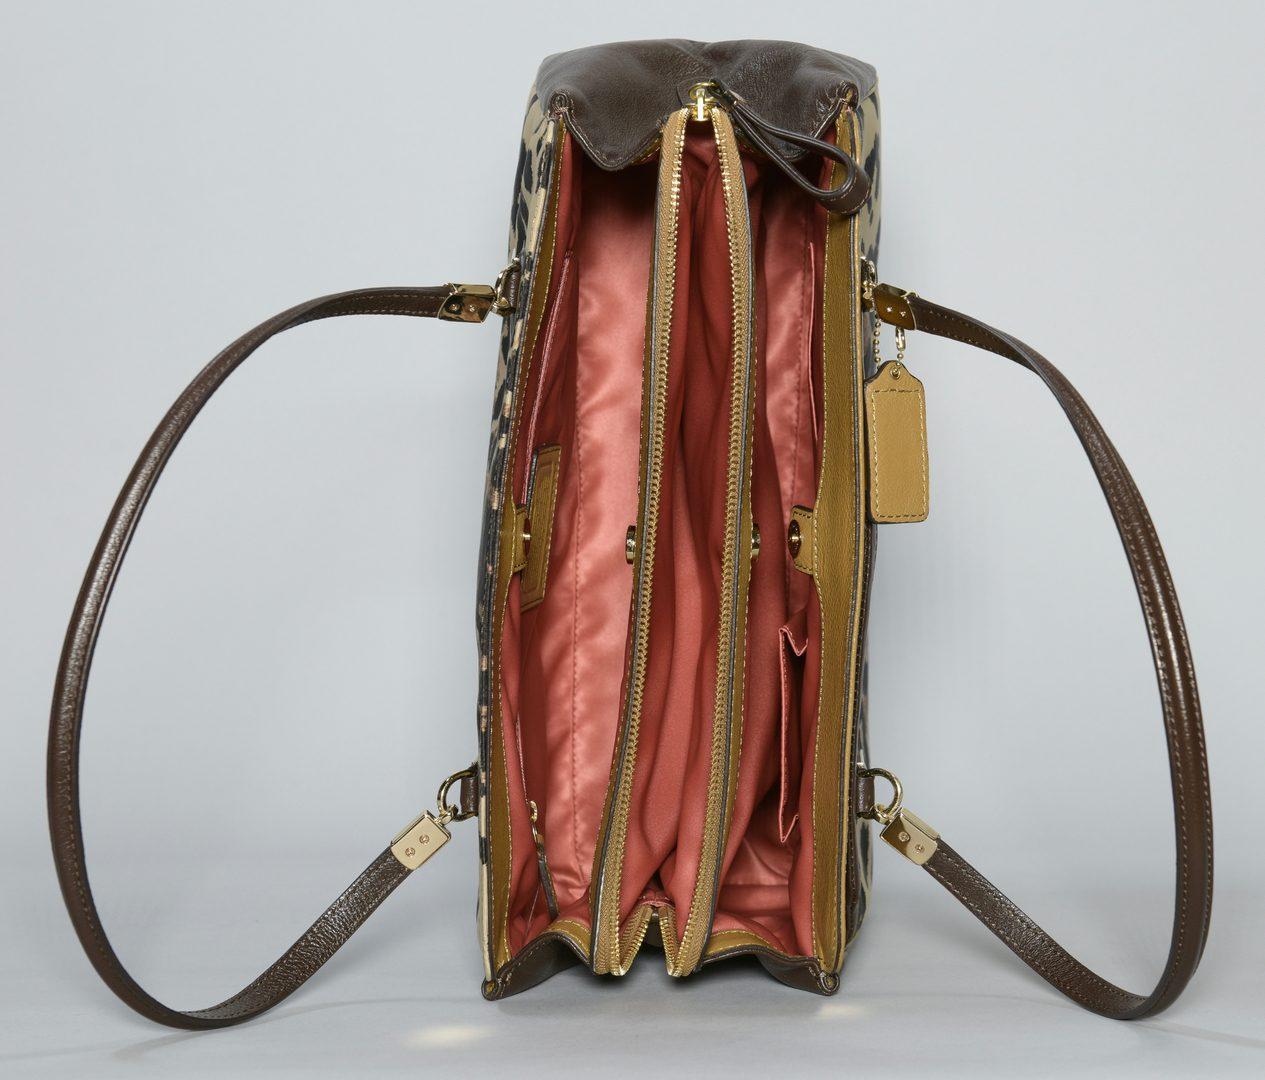 Lot 927: 2 Coach Purses, incl. One New With Tag